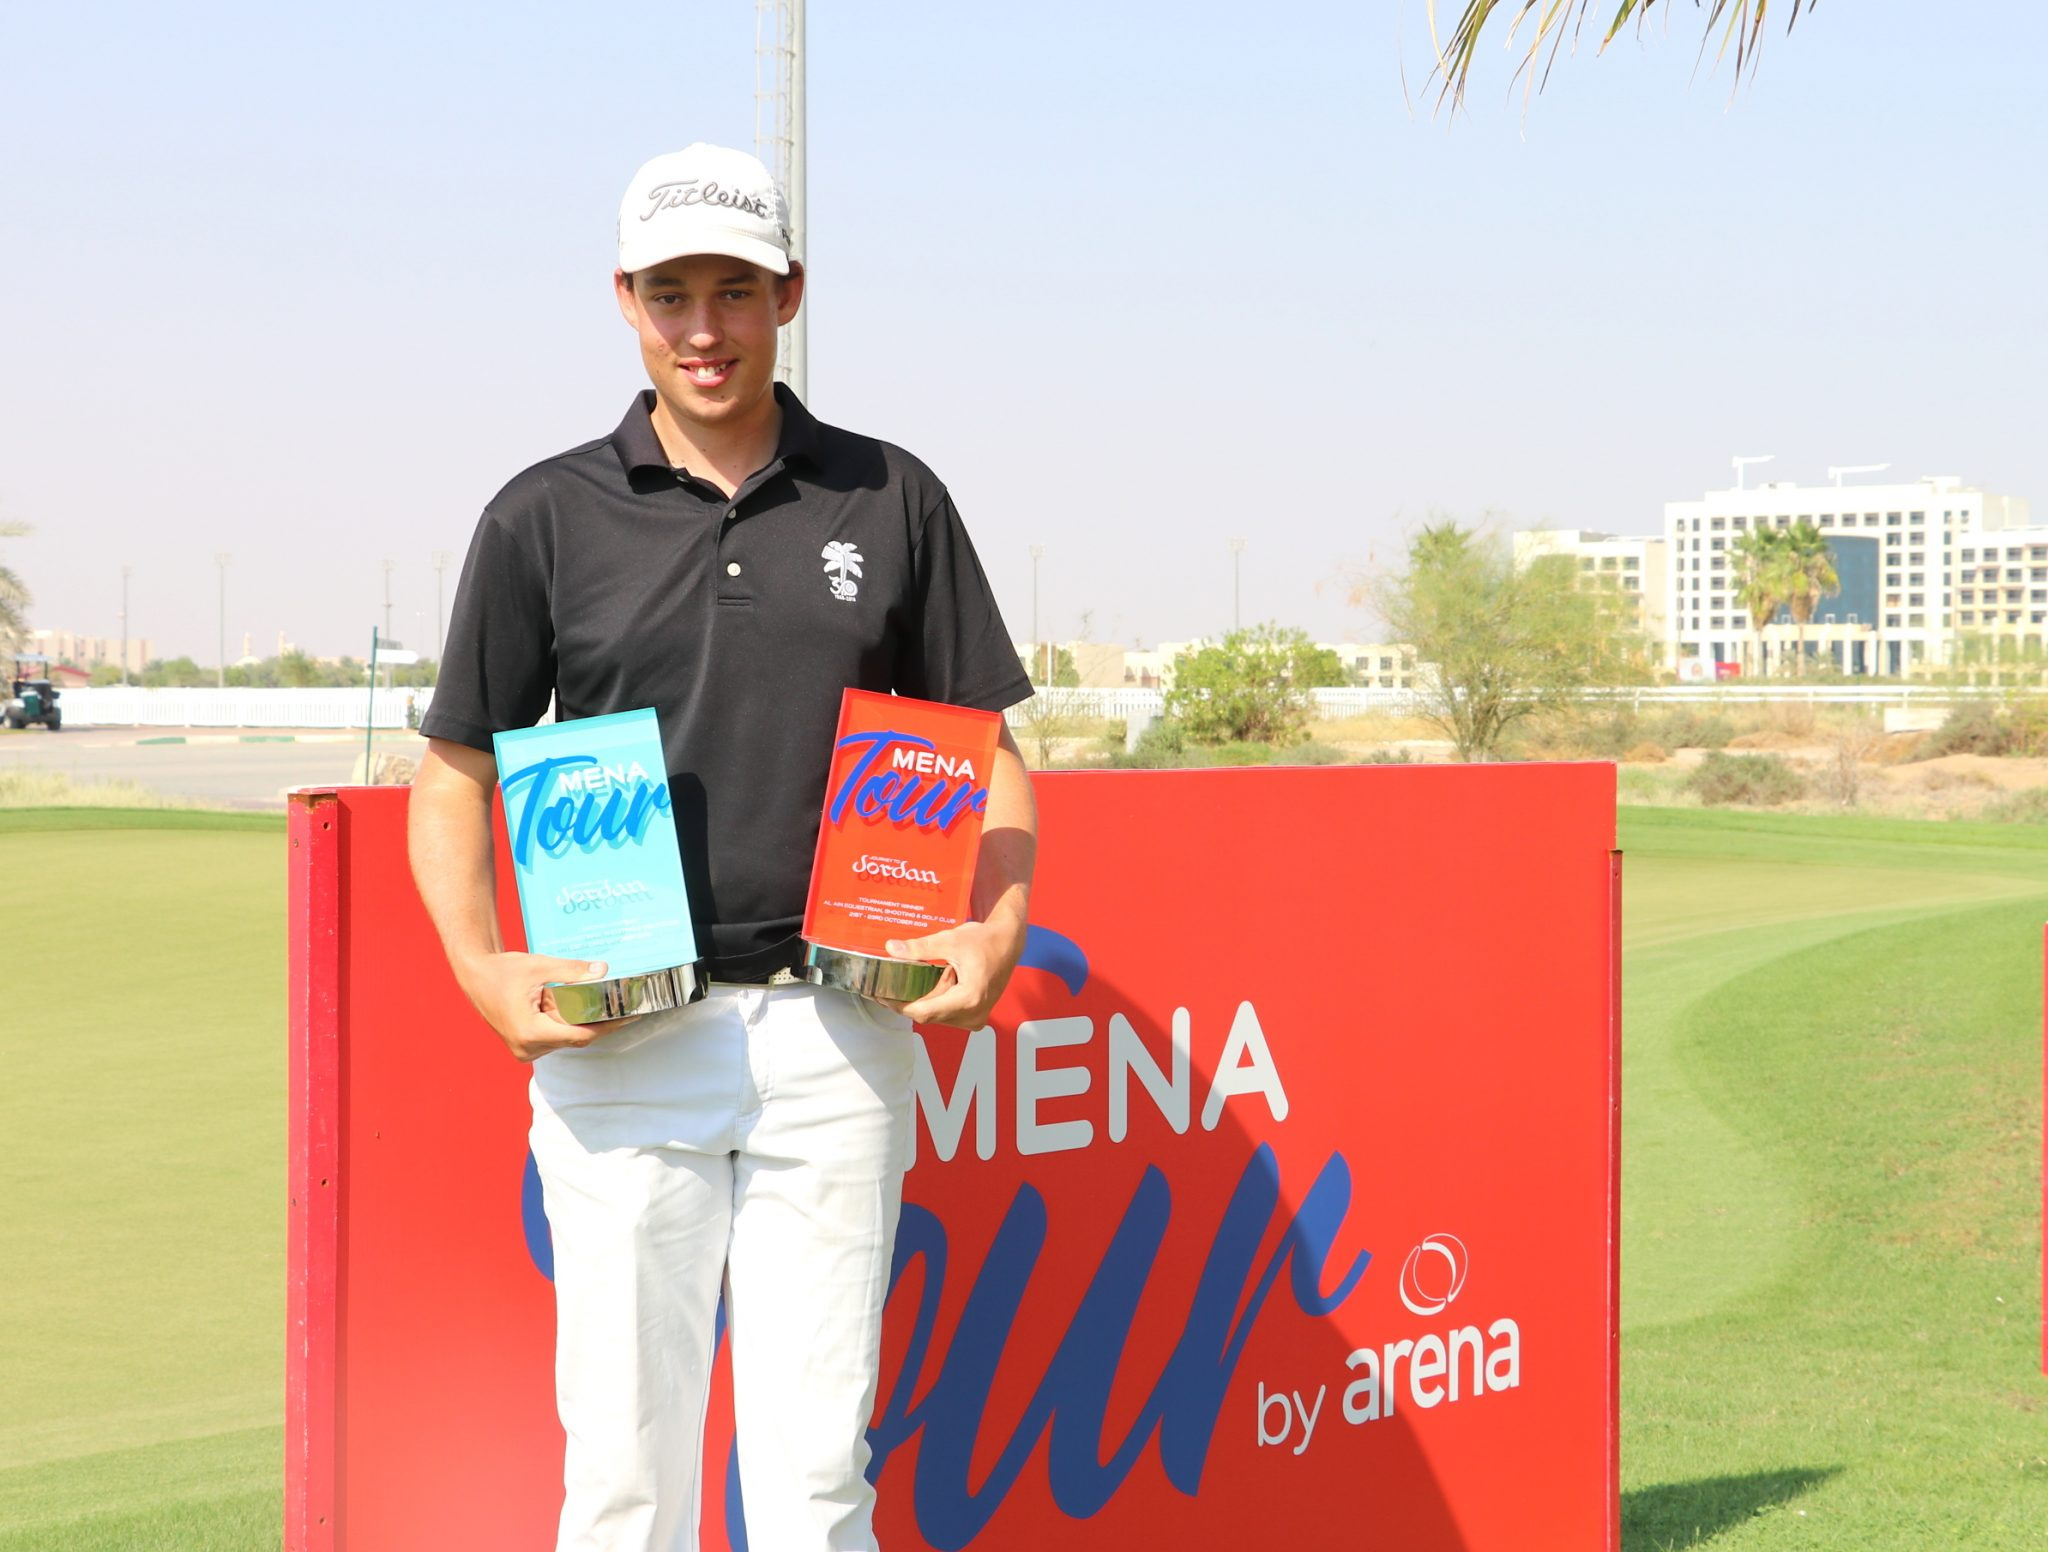 Hill's historic MENA Tour win rewrites the record books